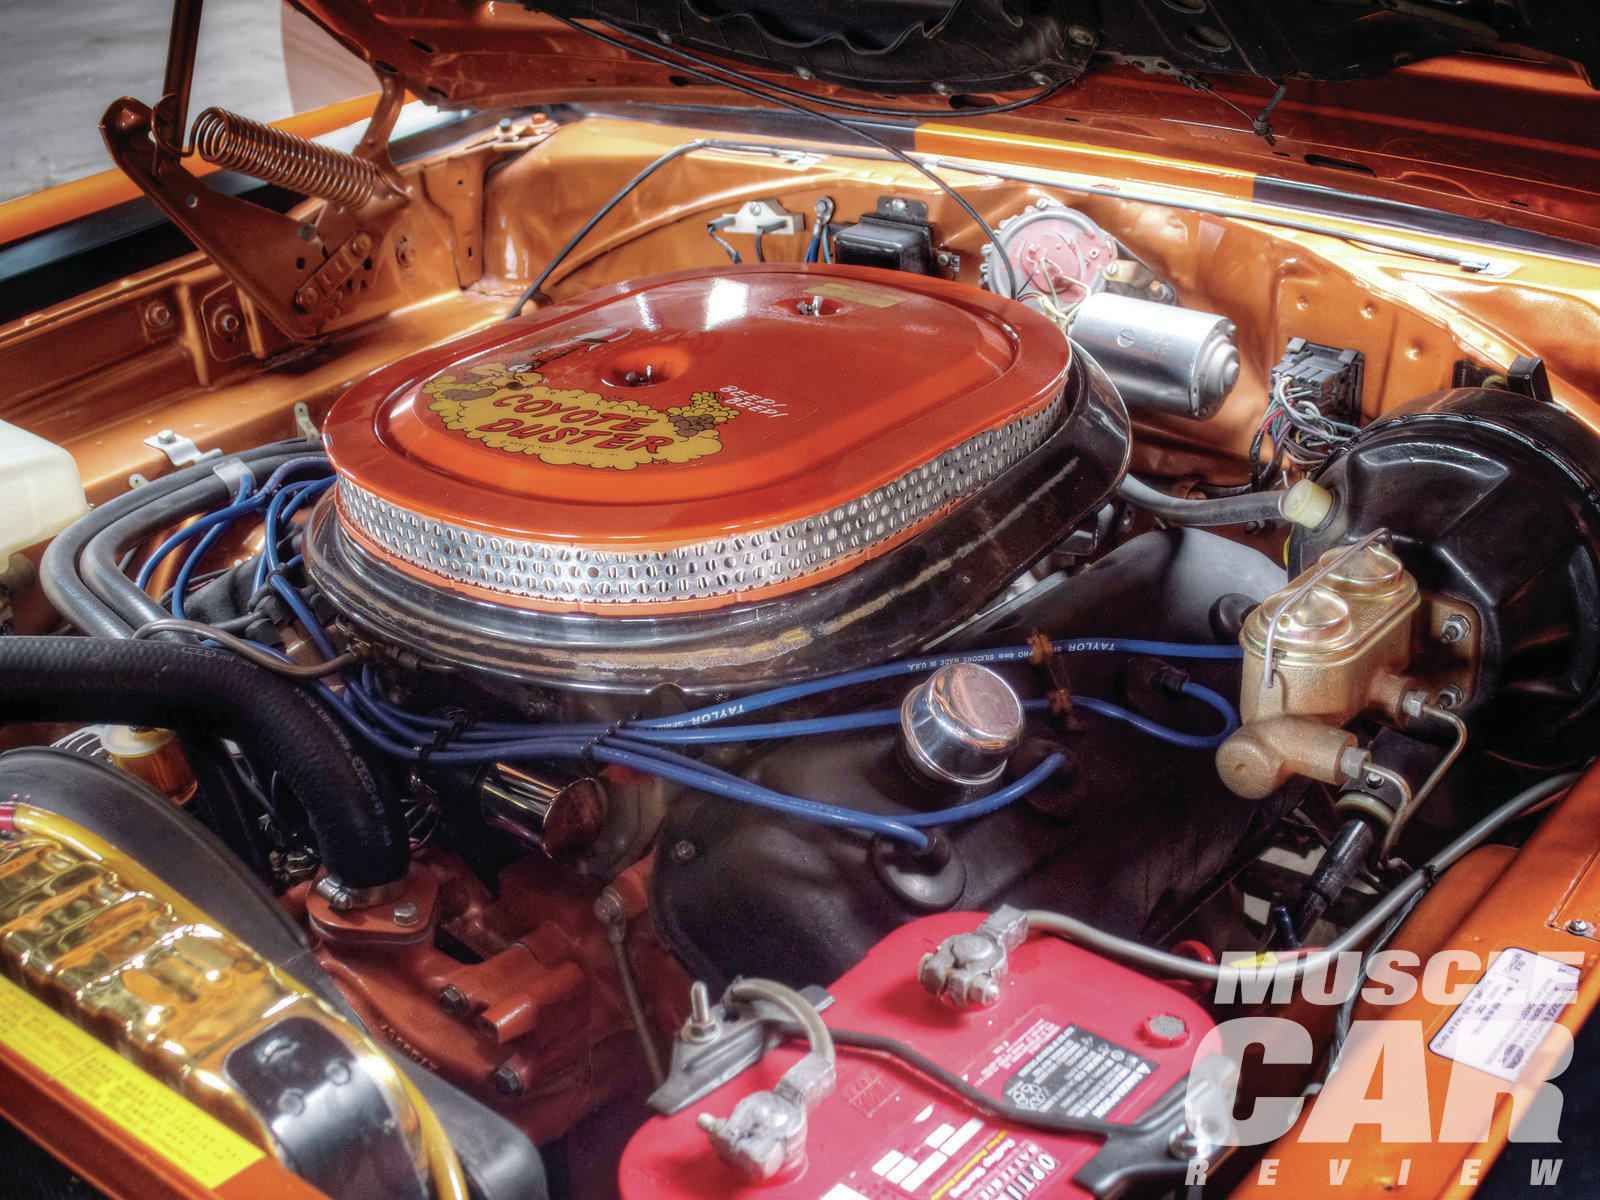 The Road Runner's family car status ended after an ill-fated trip from Colorado to Oklahoma. The water pump quit, the engine got hot, and piston rings collapsed. Ronnie parked the car and didn't work on it again for some two decades.